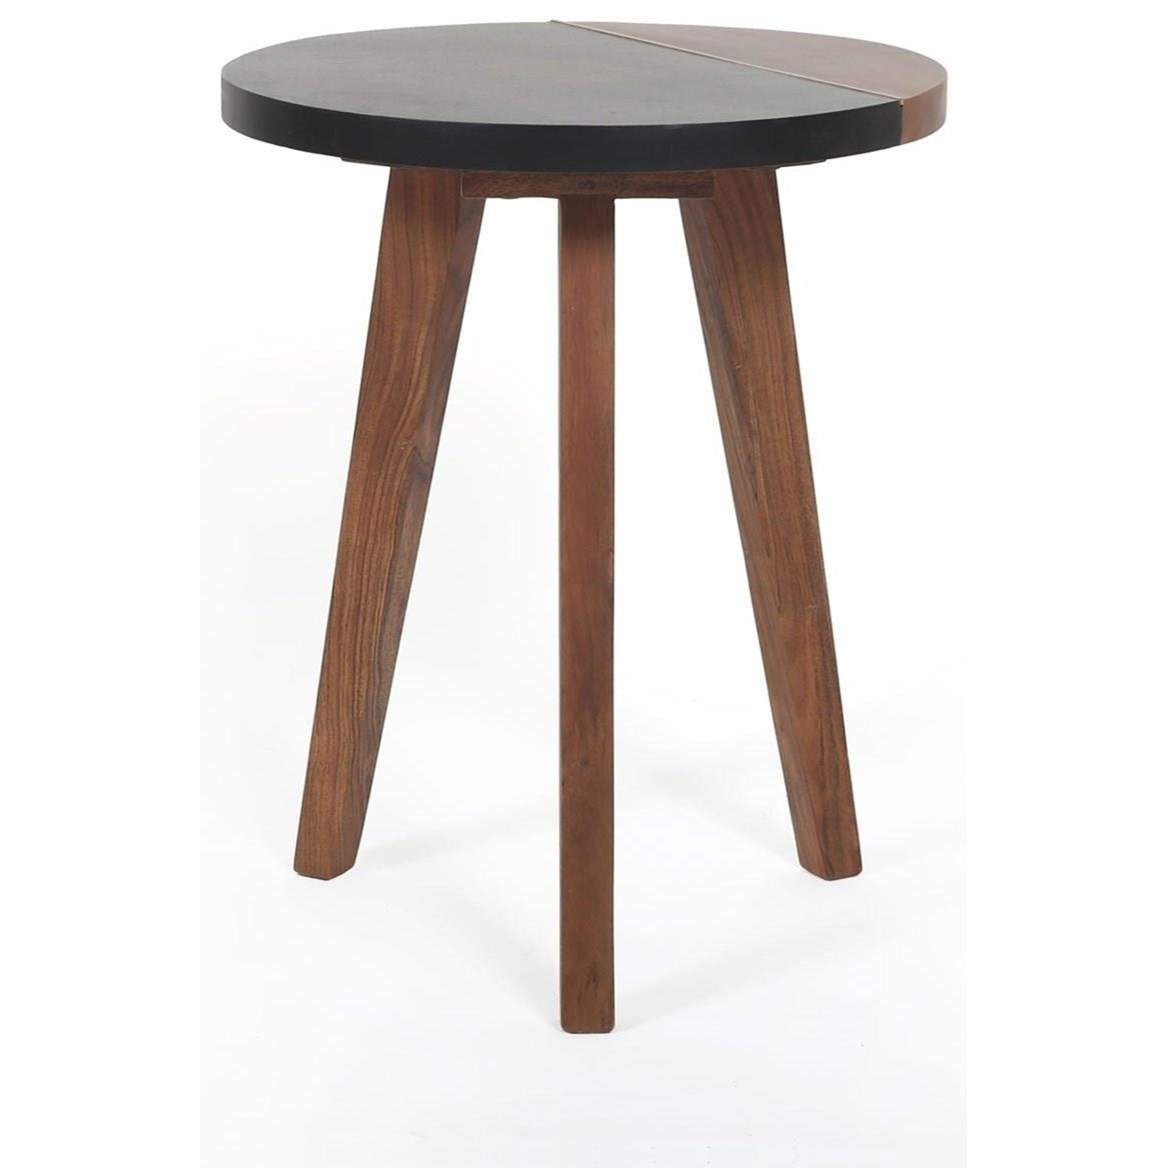 Caspian Round Accent End Table by Steve Silver at Walker's Furniture